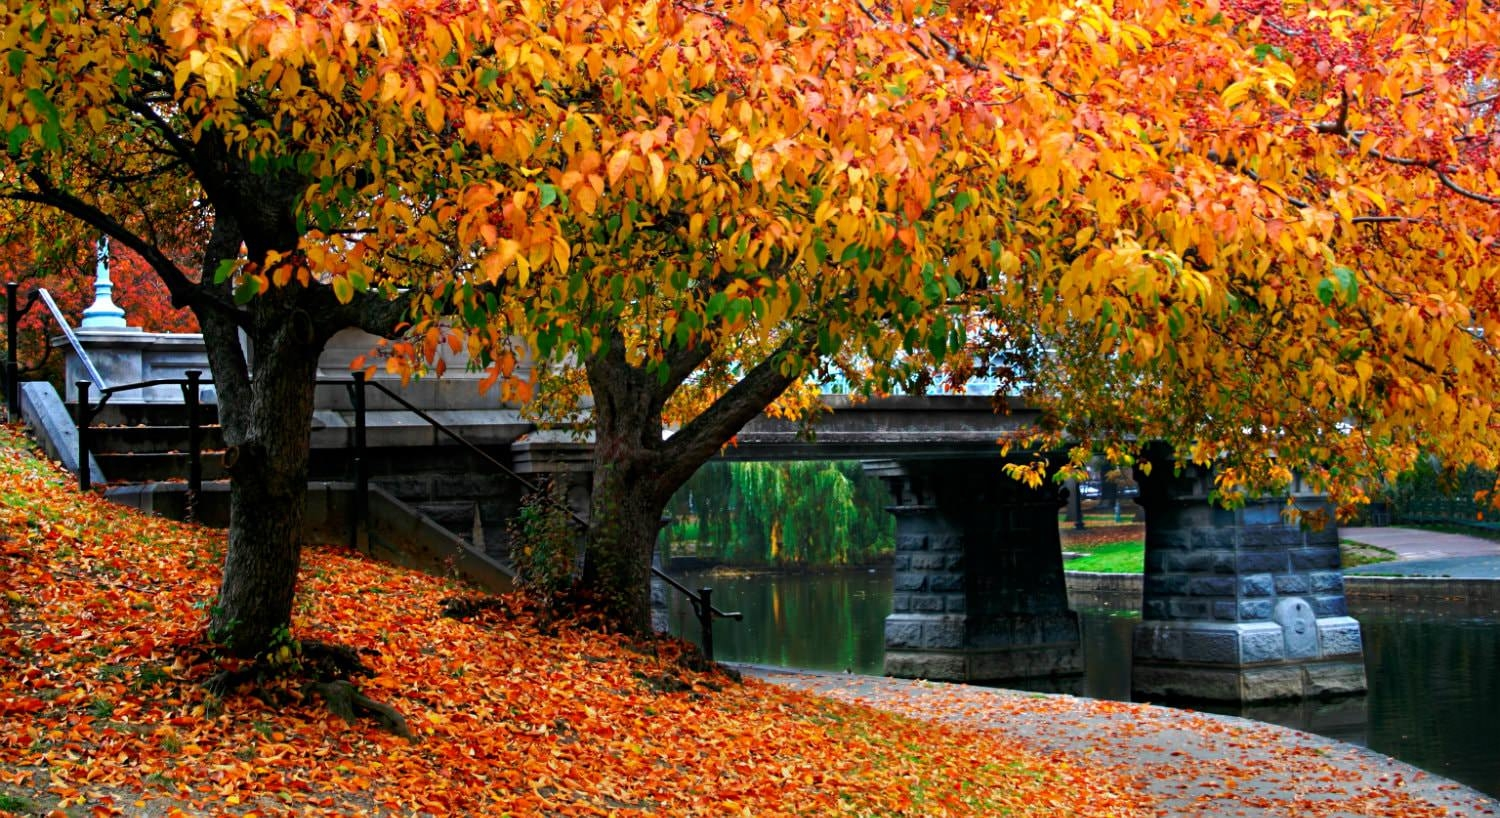 Vibrant trees along a river bank with yellow, orange, red and green leaves